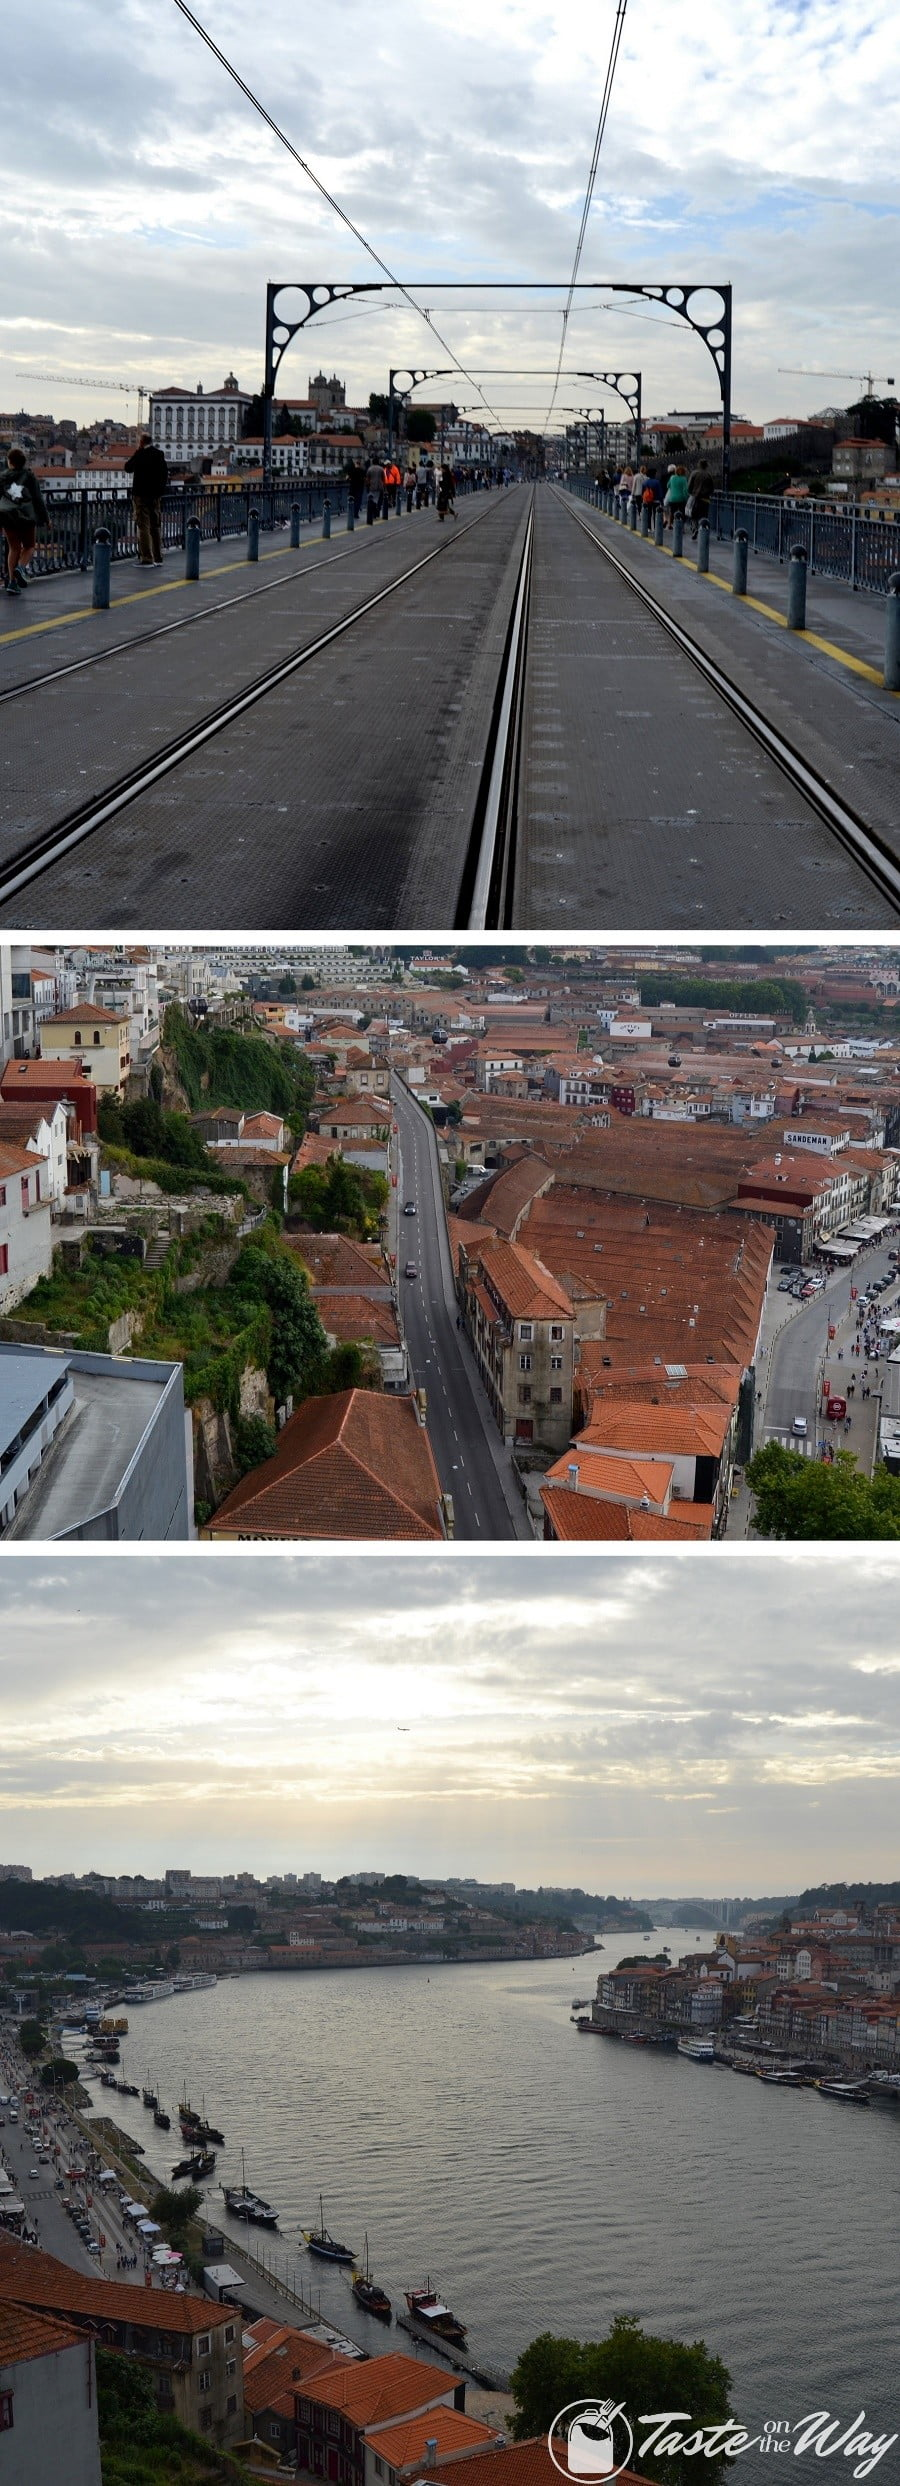 One of the top #thingstodo in #Porto, #Portugal is to climb all the way to the top of Dom Louis I bridge. Check out for more! #travel #photography @tasteontheway